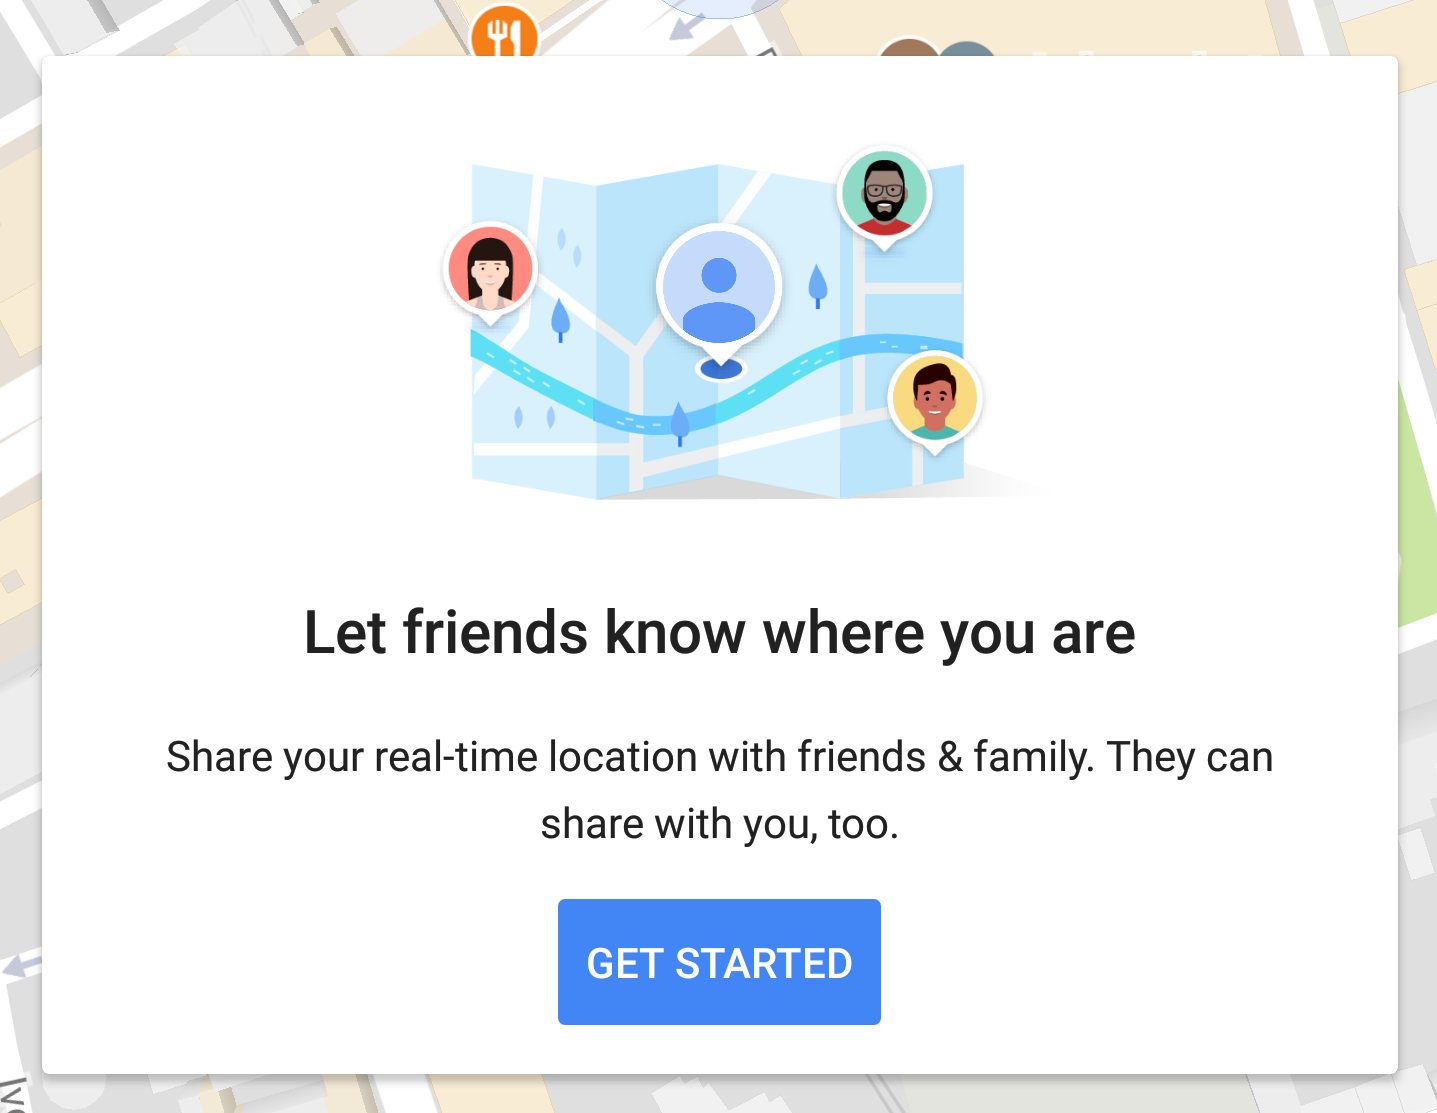 Google Maps: 11 incredibly useful features you may not know about